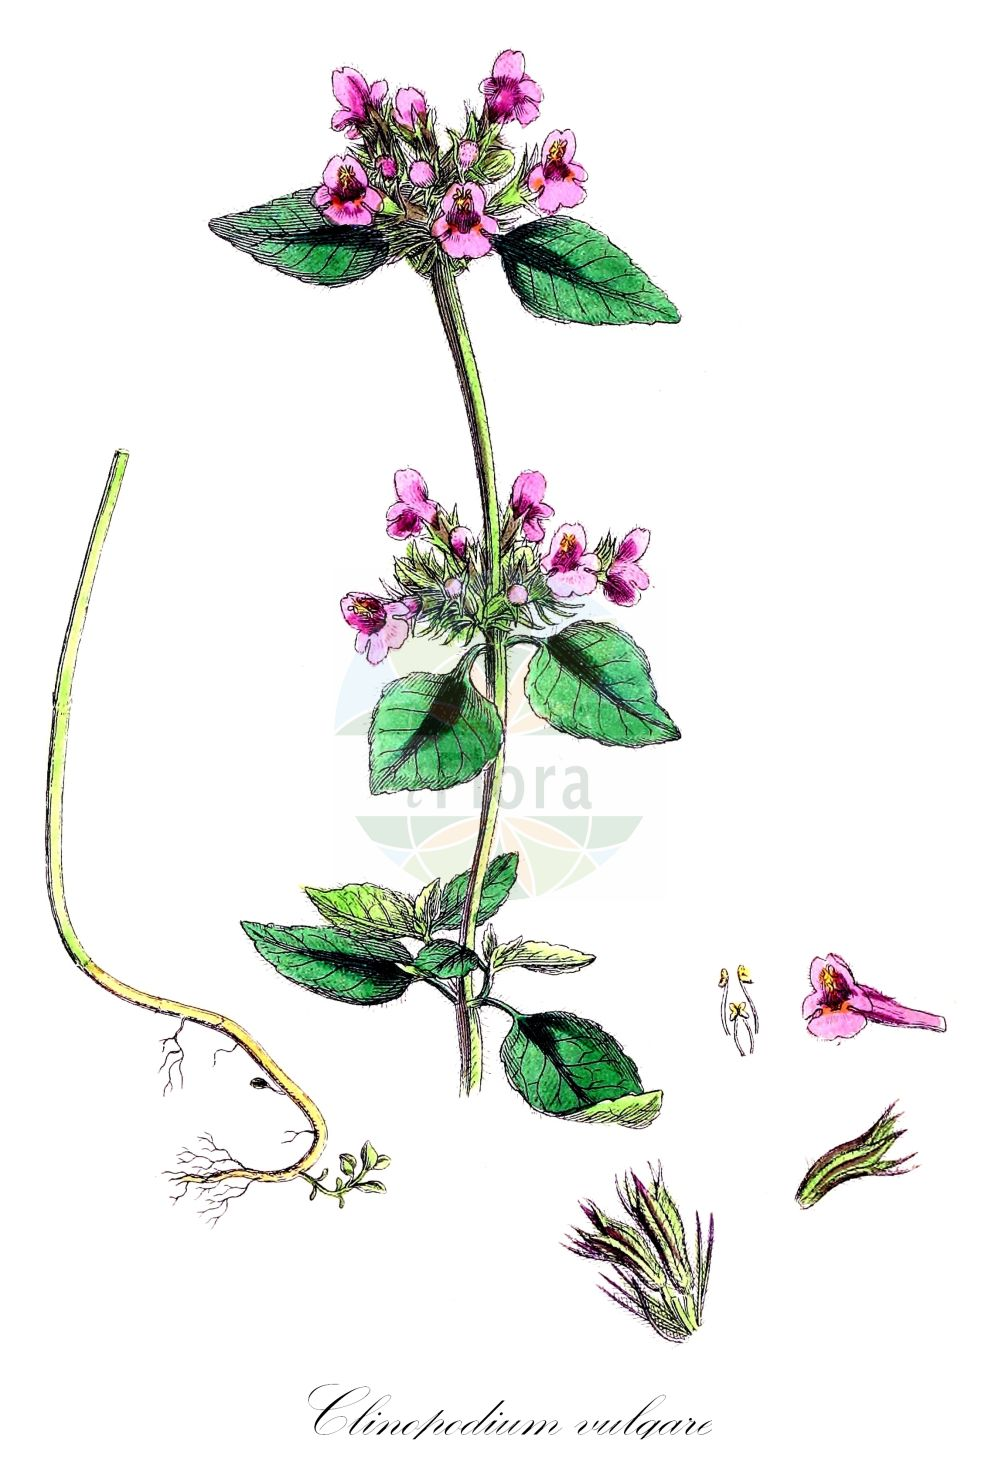 Historische Abbildung von Clinopodium vulgare (Wirbeldost - Wild Basil). Das Bild zeigt Blatt, Bluete, Frucht und Same. ---- Historical Drawing of Clinopodium vulgare (Wirbeldost - Wild Basil).The image is showing leaf, flower, fruit and seed.(Clinopodium vulgare,Wirbeldost,Wild Basil,Acinos vulgaris,Melissa clinopodium,Melissa vulgaris,Borstige Bergminze,Wirbelborste,Cushion Calamint,Wild Basi,Clinopodium,Wirbeldost,Calamint,Lamiaceae,Lippenbluetengewaechse;Lippenbluetler,Nettle family,Blatt,Bluete,Frucht,Same,leaf,flower,fruit,seed,Sowerby (1790-1813))